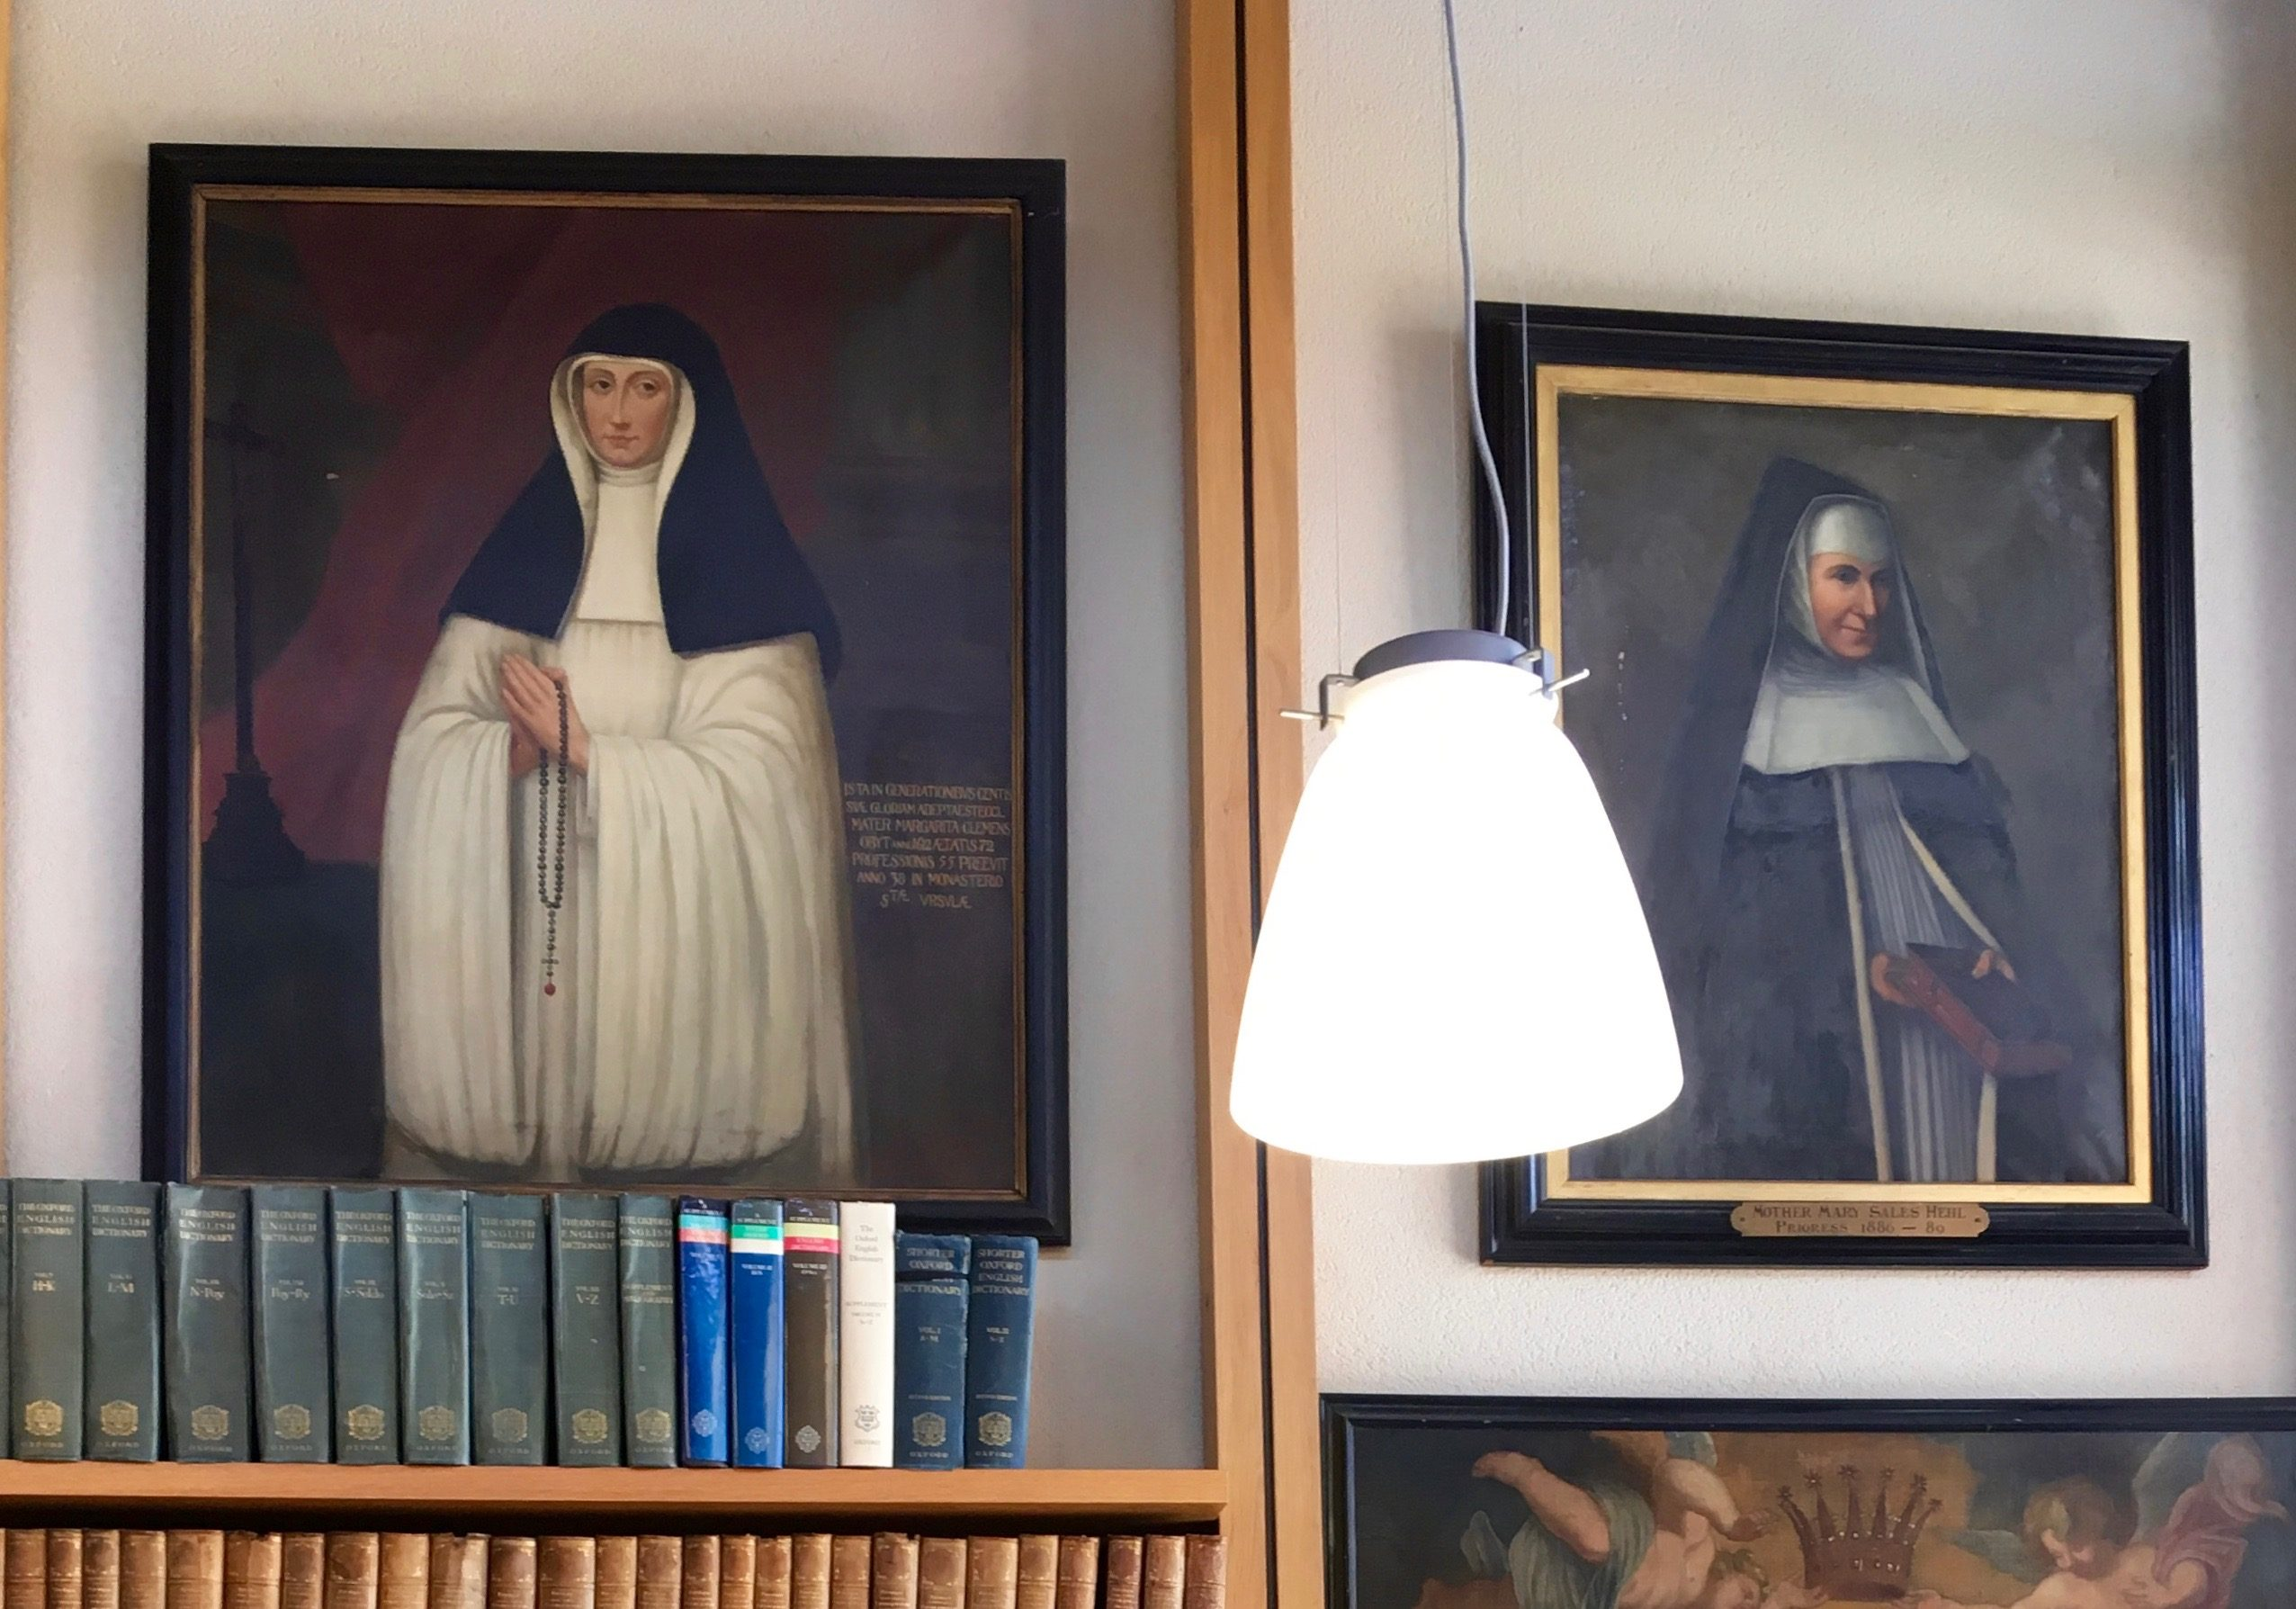 Portraits in the reading room of Mother Margaret Clement (1540–1612), and Mother Mary Sales Hehl, both English Canonesses of St Augustine. Image taken by the author